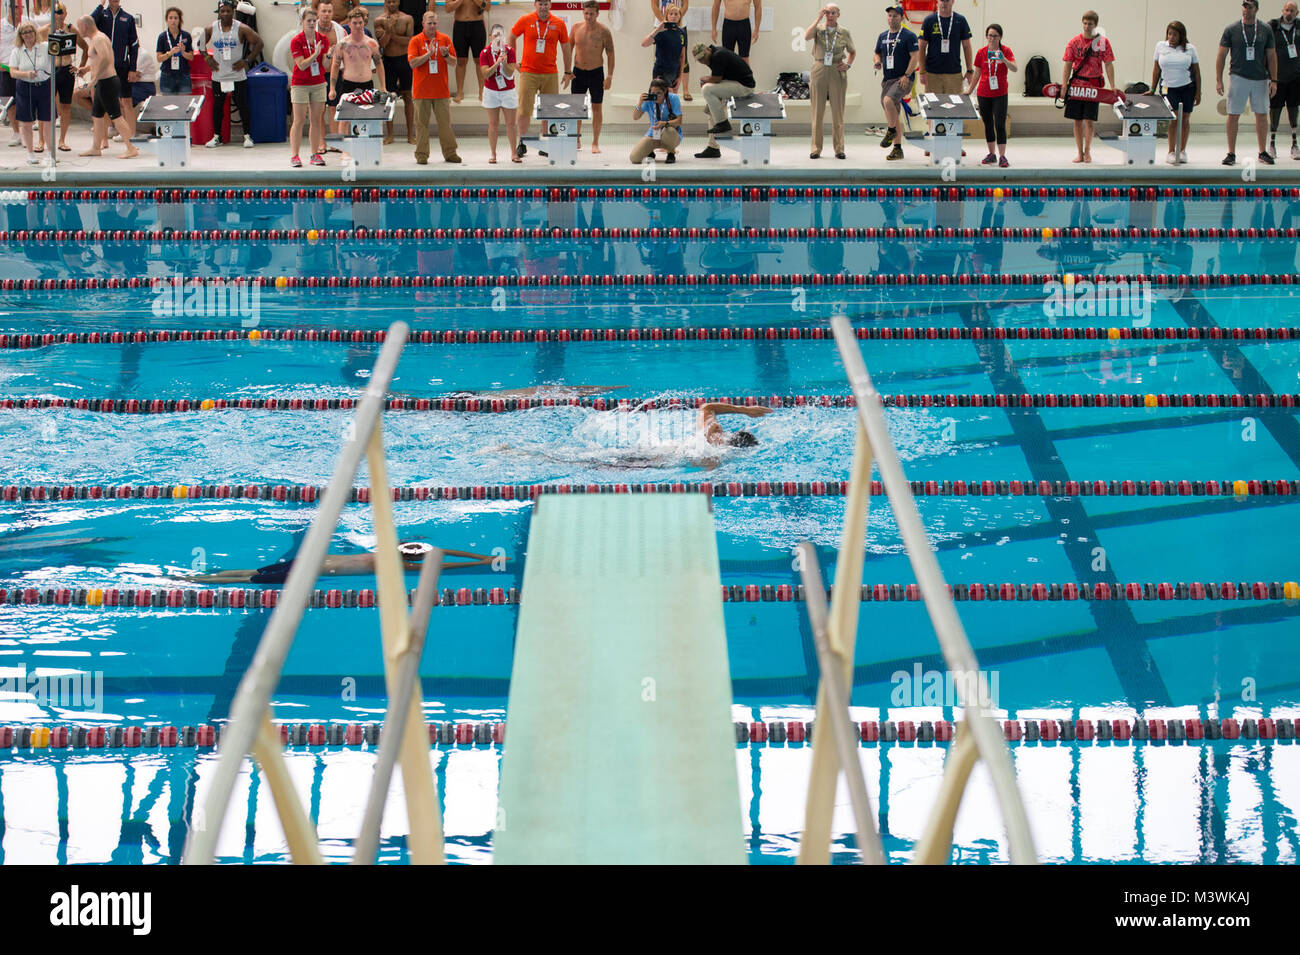 A swimmer races in the University Illinois in Chicago natatorium during the 2017 Dept. of Defense Warrior Games - Stock Image